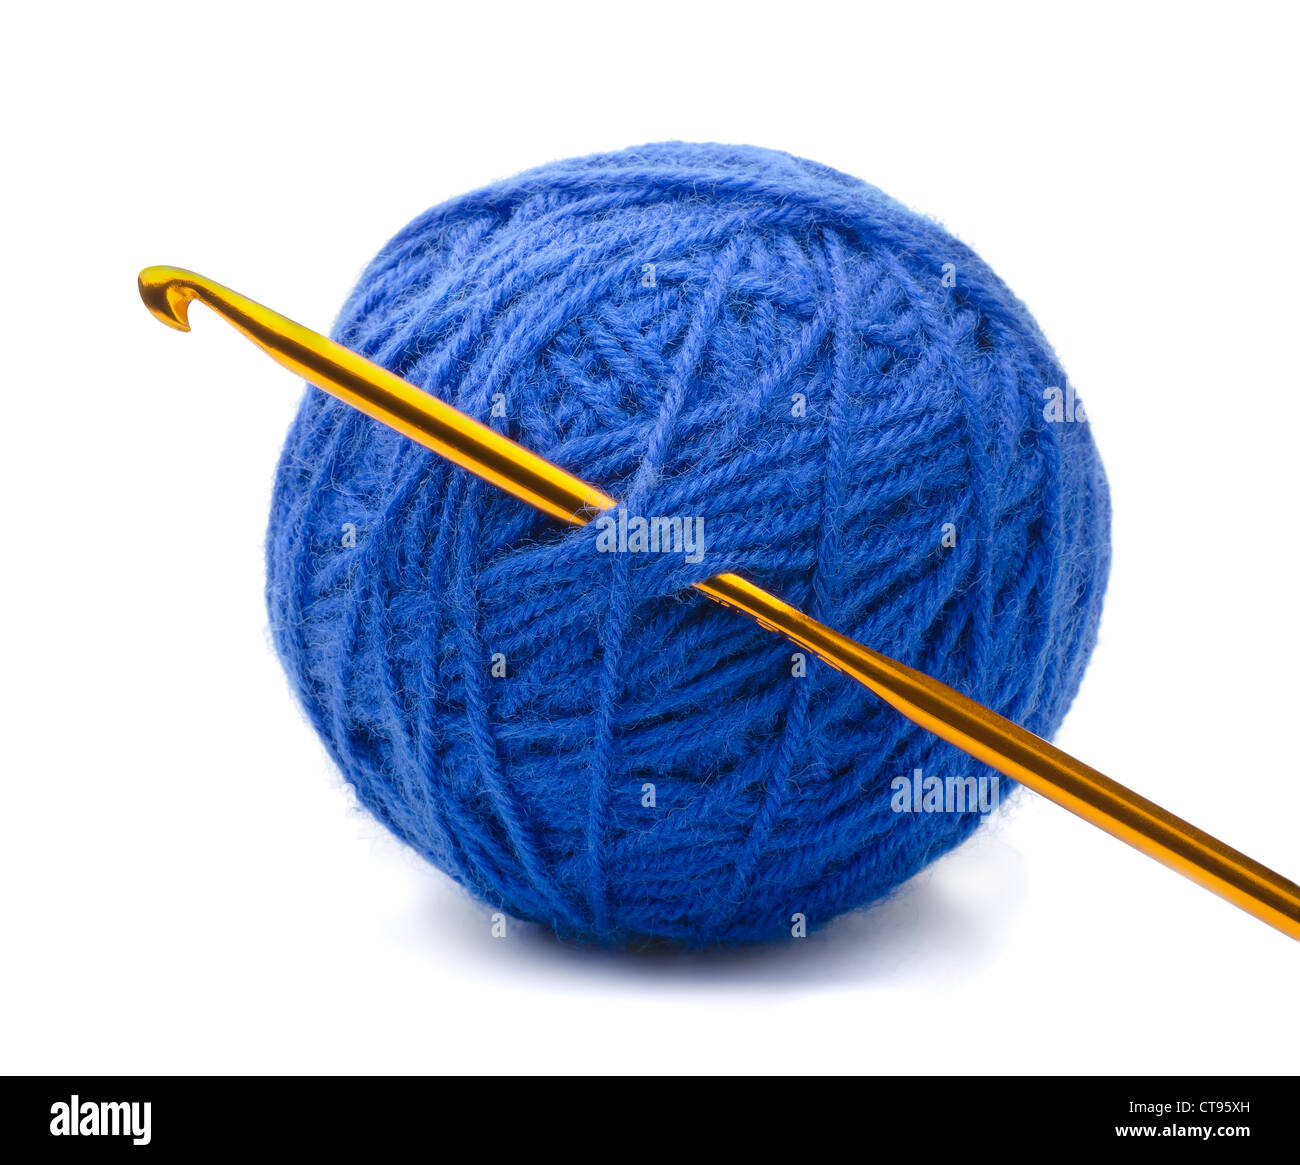 Ball of blue yarn and crochet hook isolated on white - Stock Image